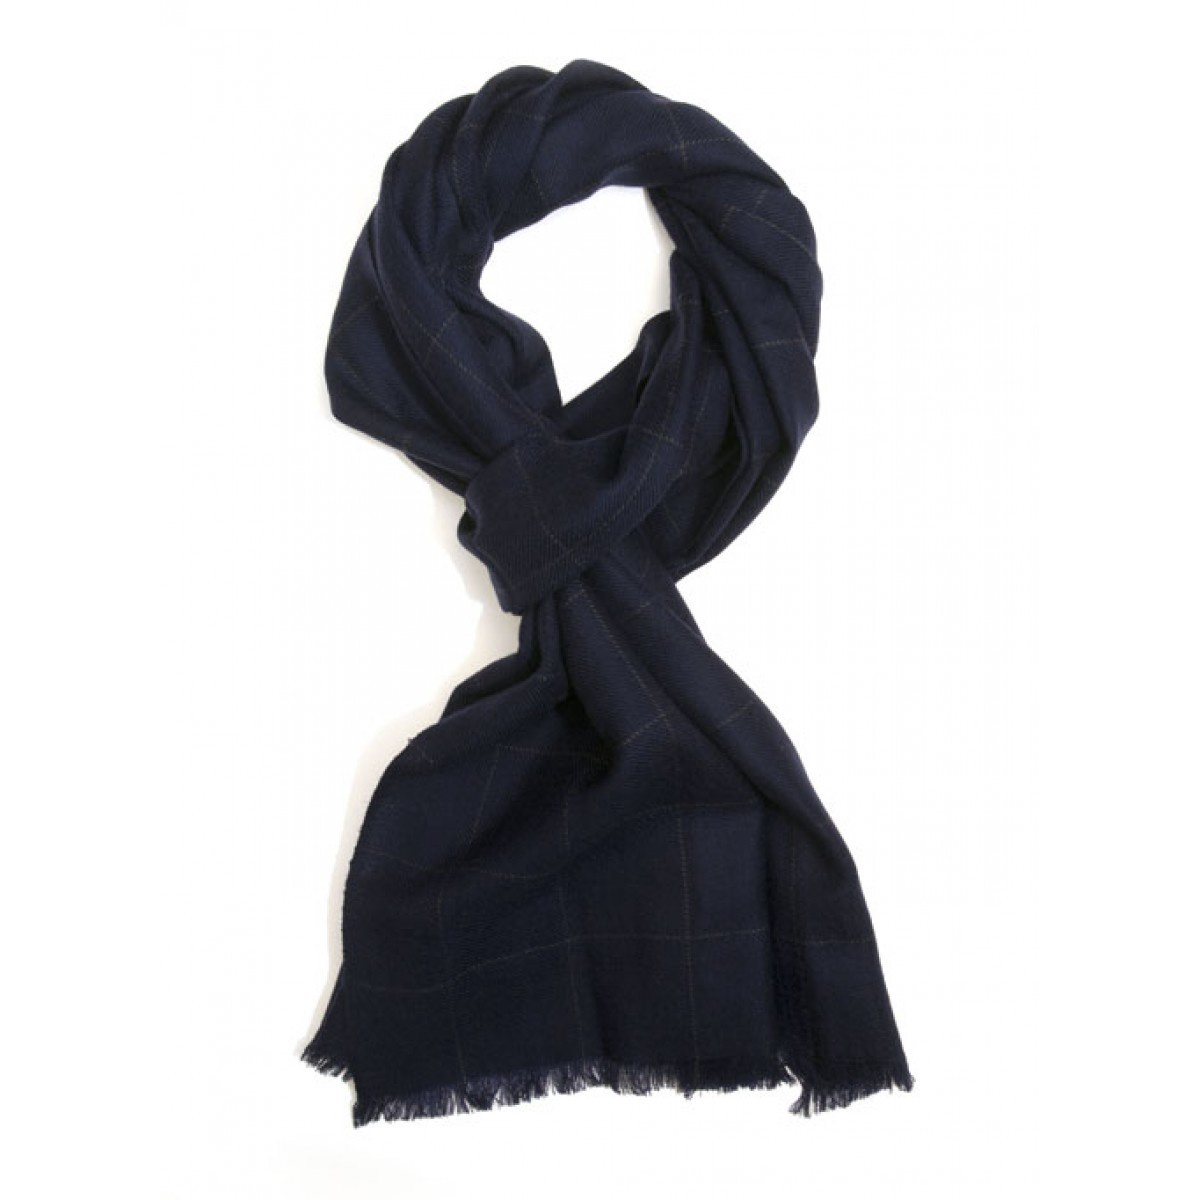 Parc City Boot Co. - Micro Wool Scarf in Navy Windowpane Check